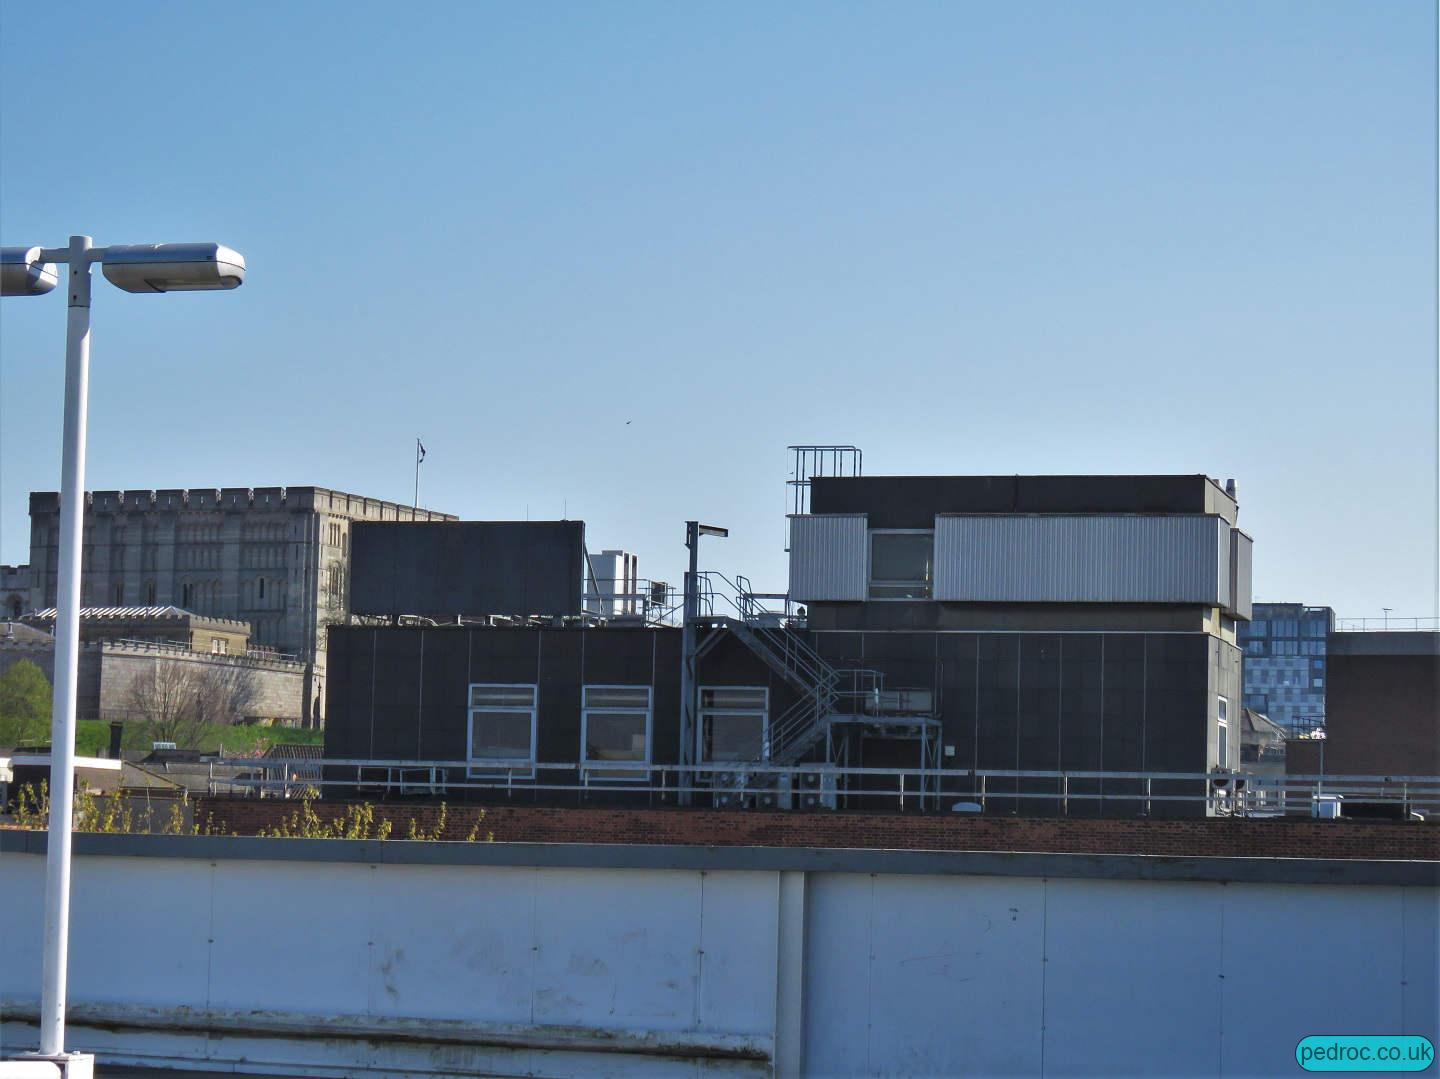 General view of the BT Exchange roof.